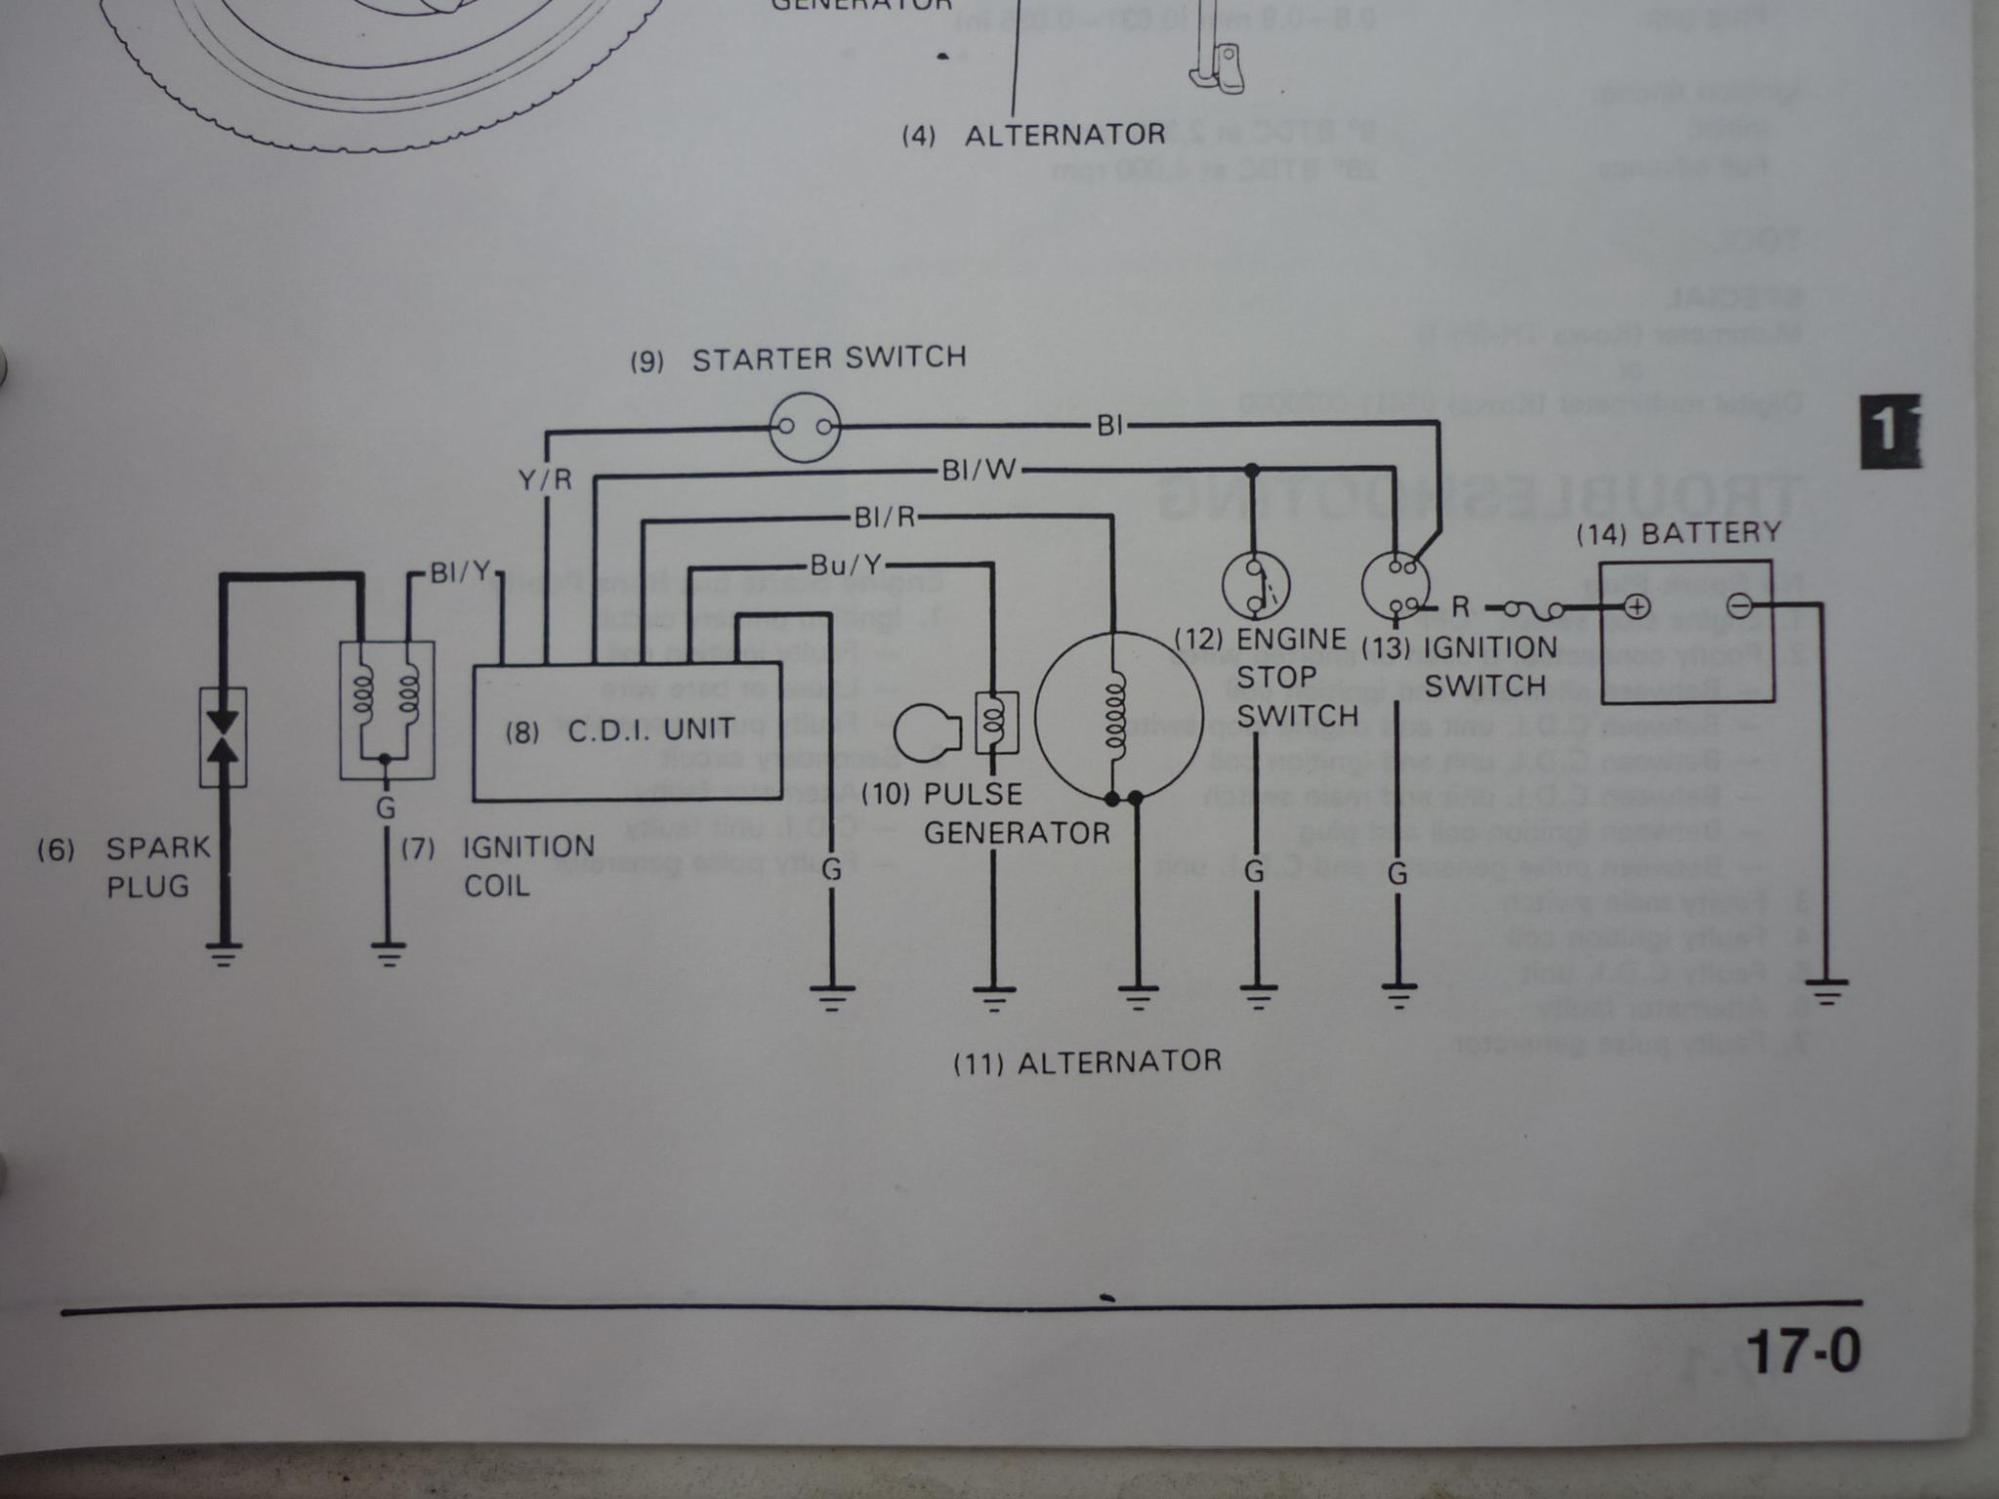 hight resolution of crf 230 wiring diagram guide about wiring diagram crf 230 wiring diagram